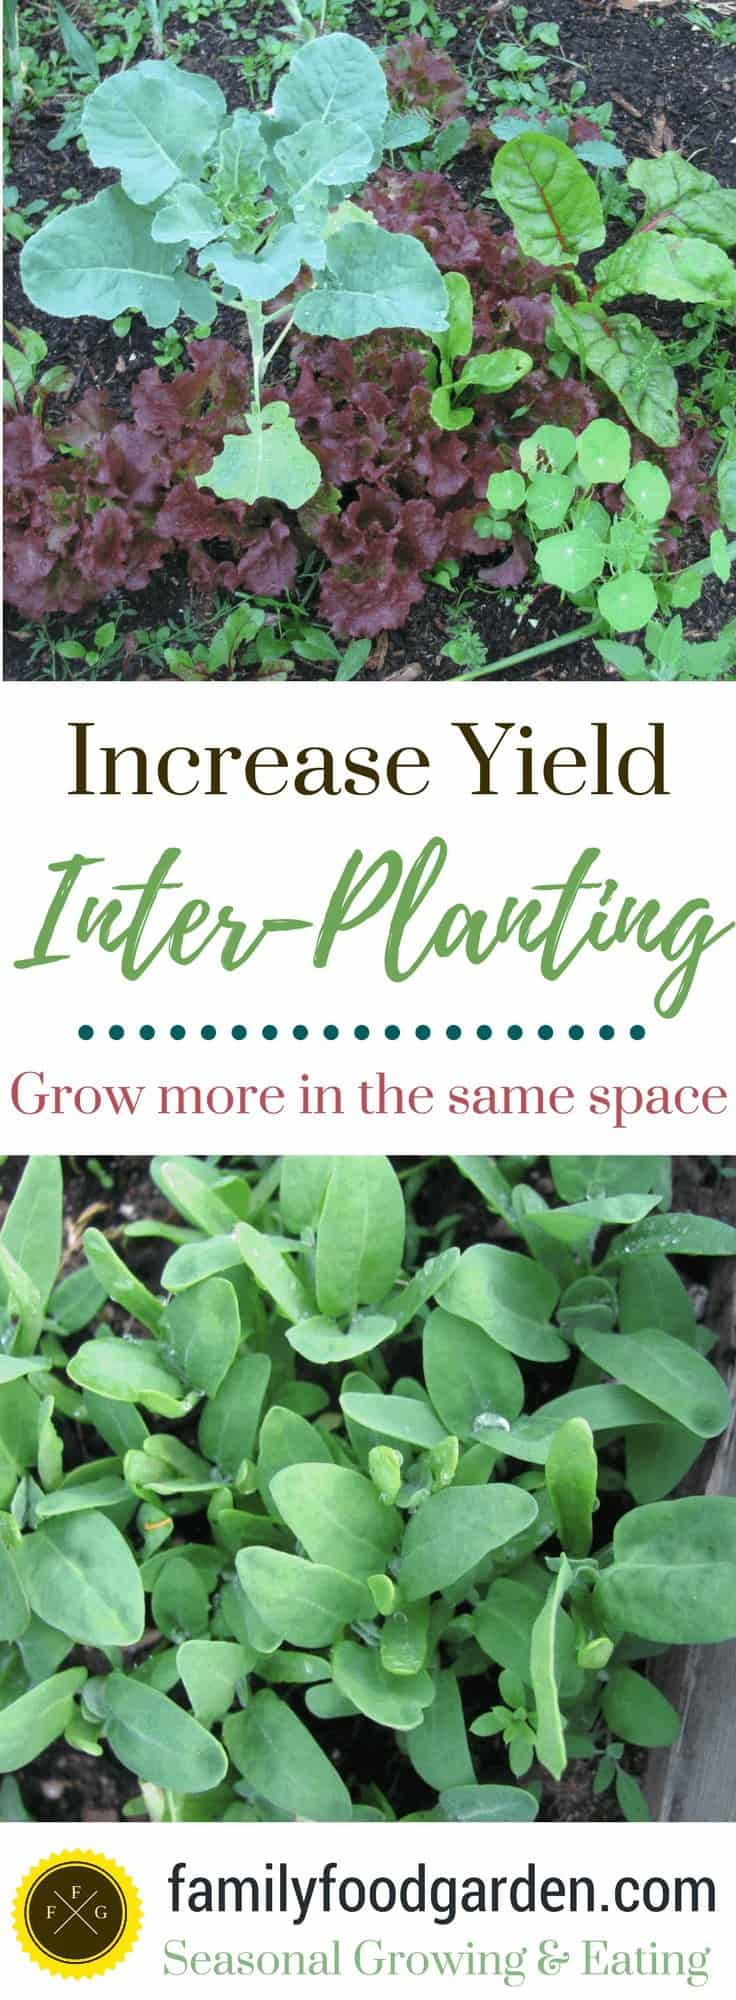 Inter-Planting for More Garden Yields